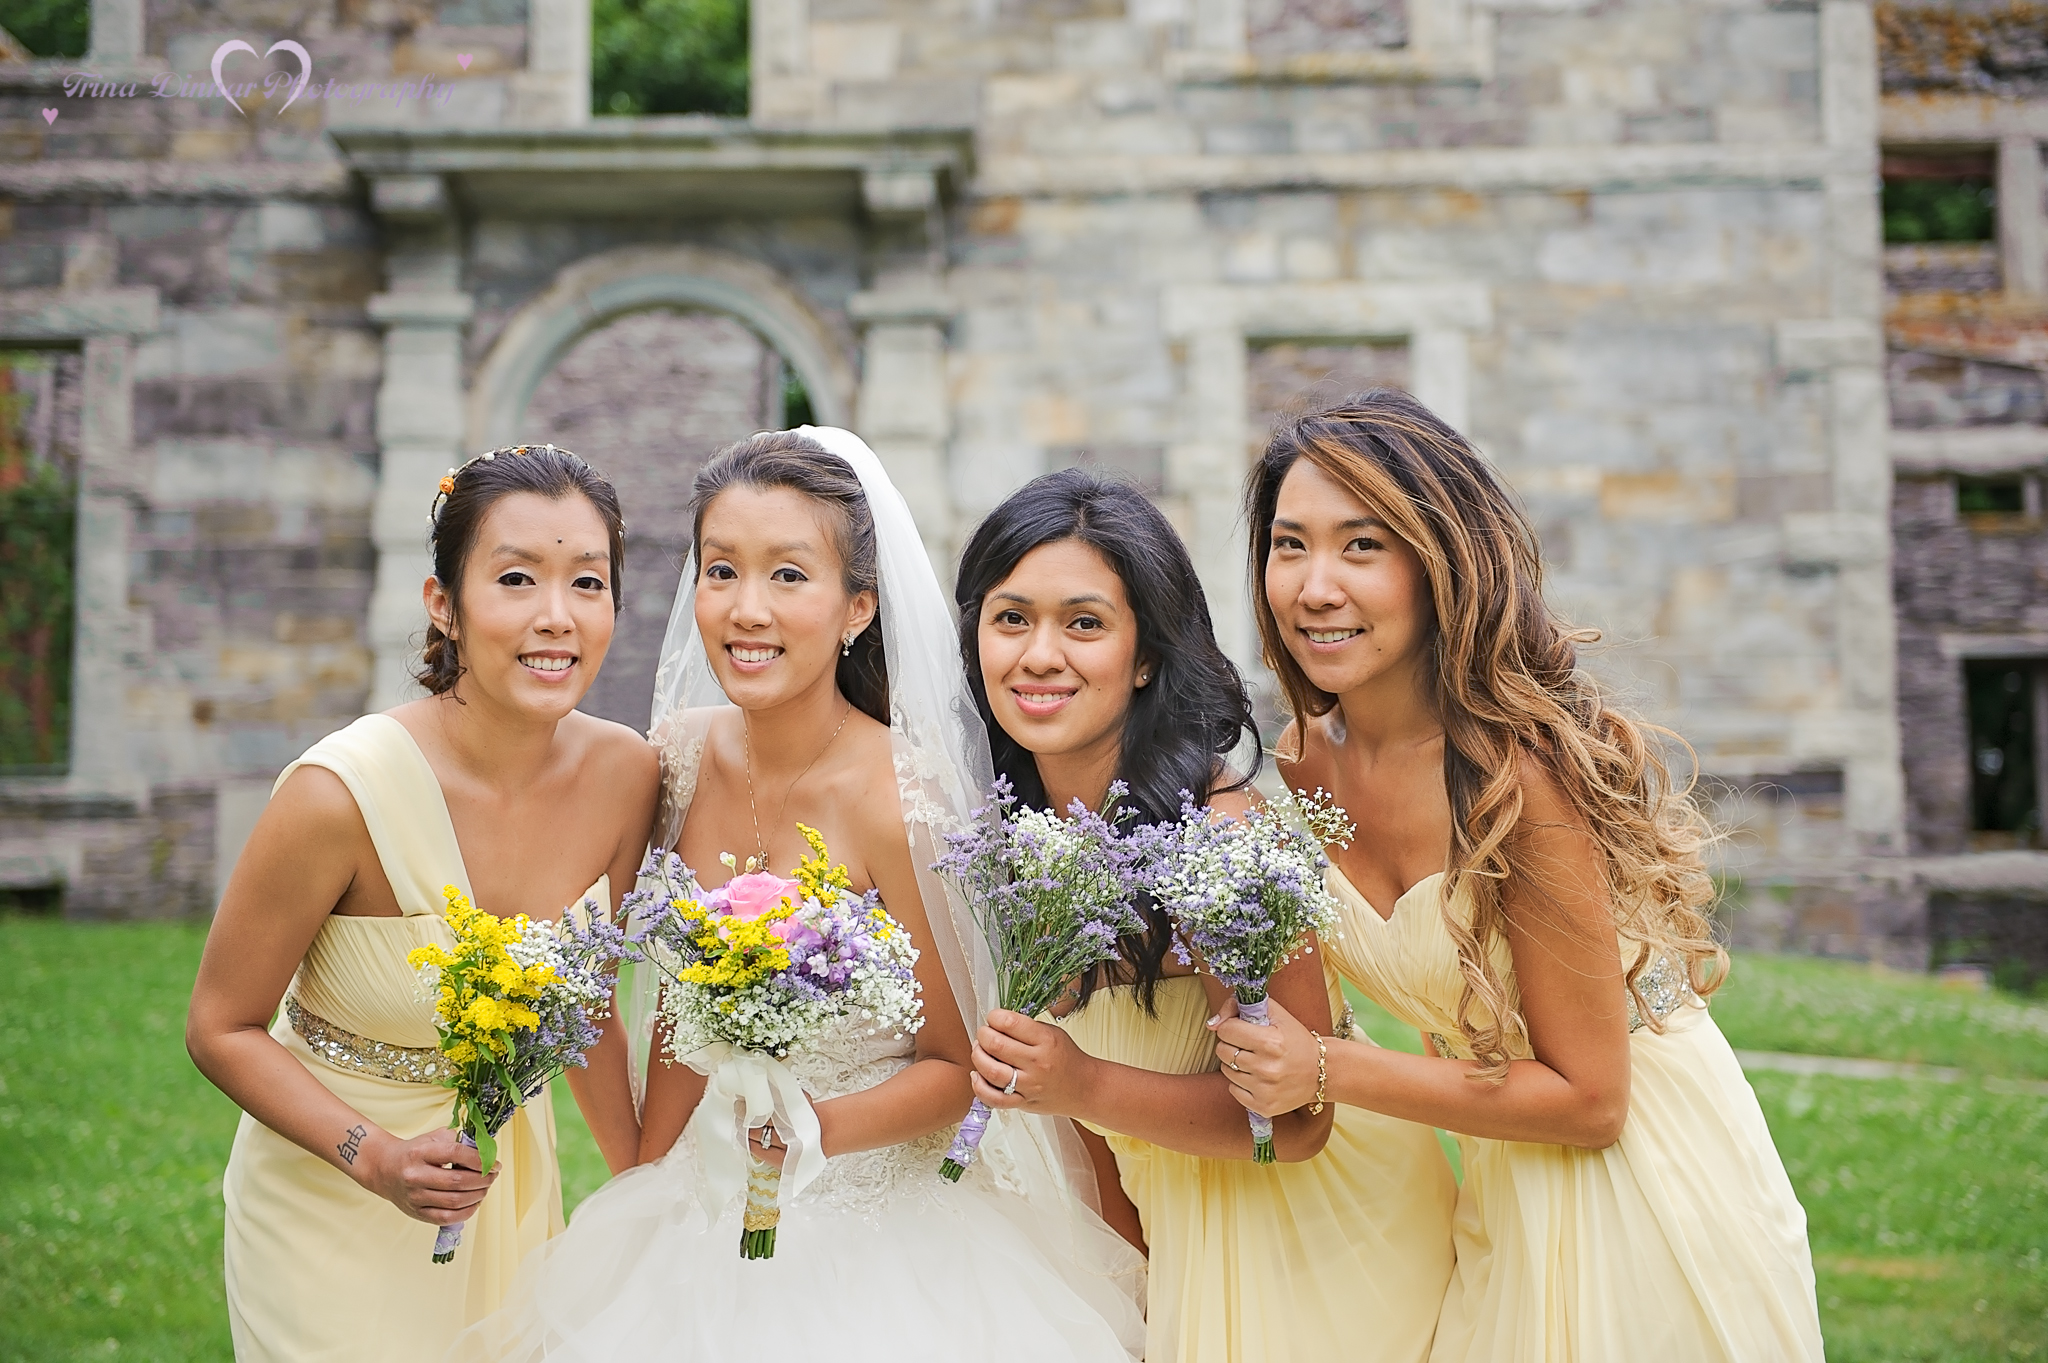 Bride and her bridesmaids at Fort Williams Park following a wedding ceremony in Coastal Maine